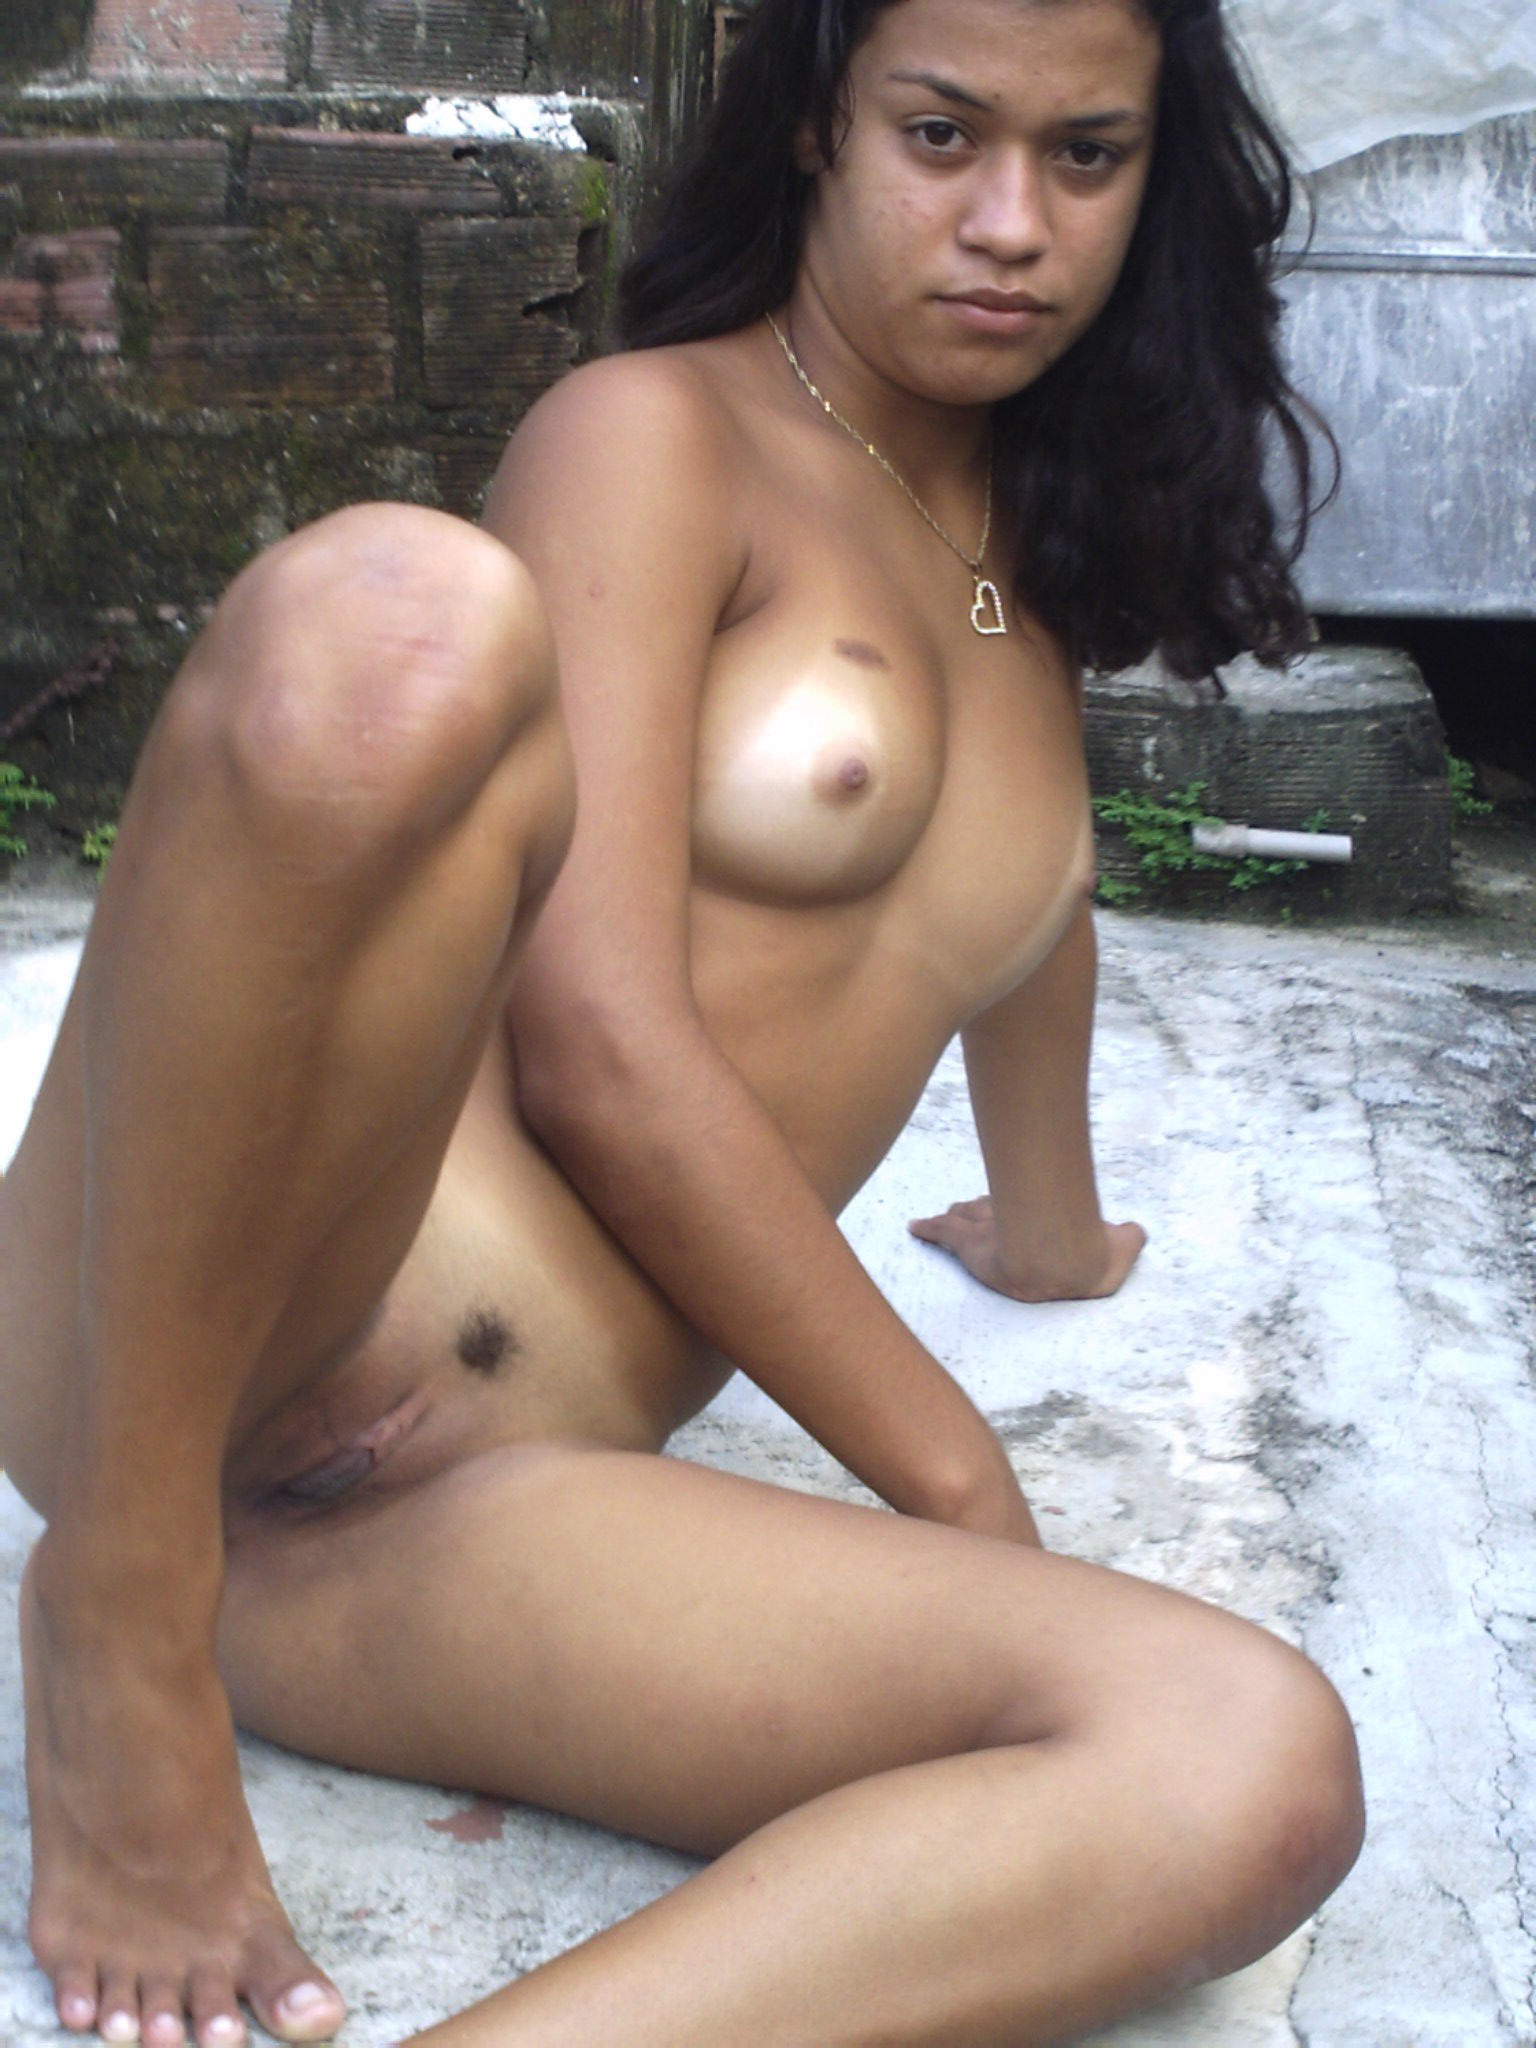 Teen likes young mexicans nude tumblr ass